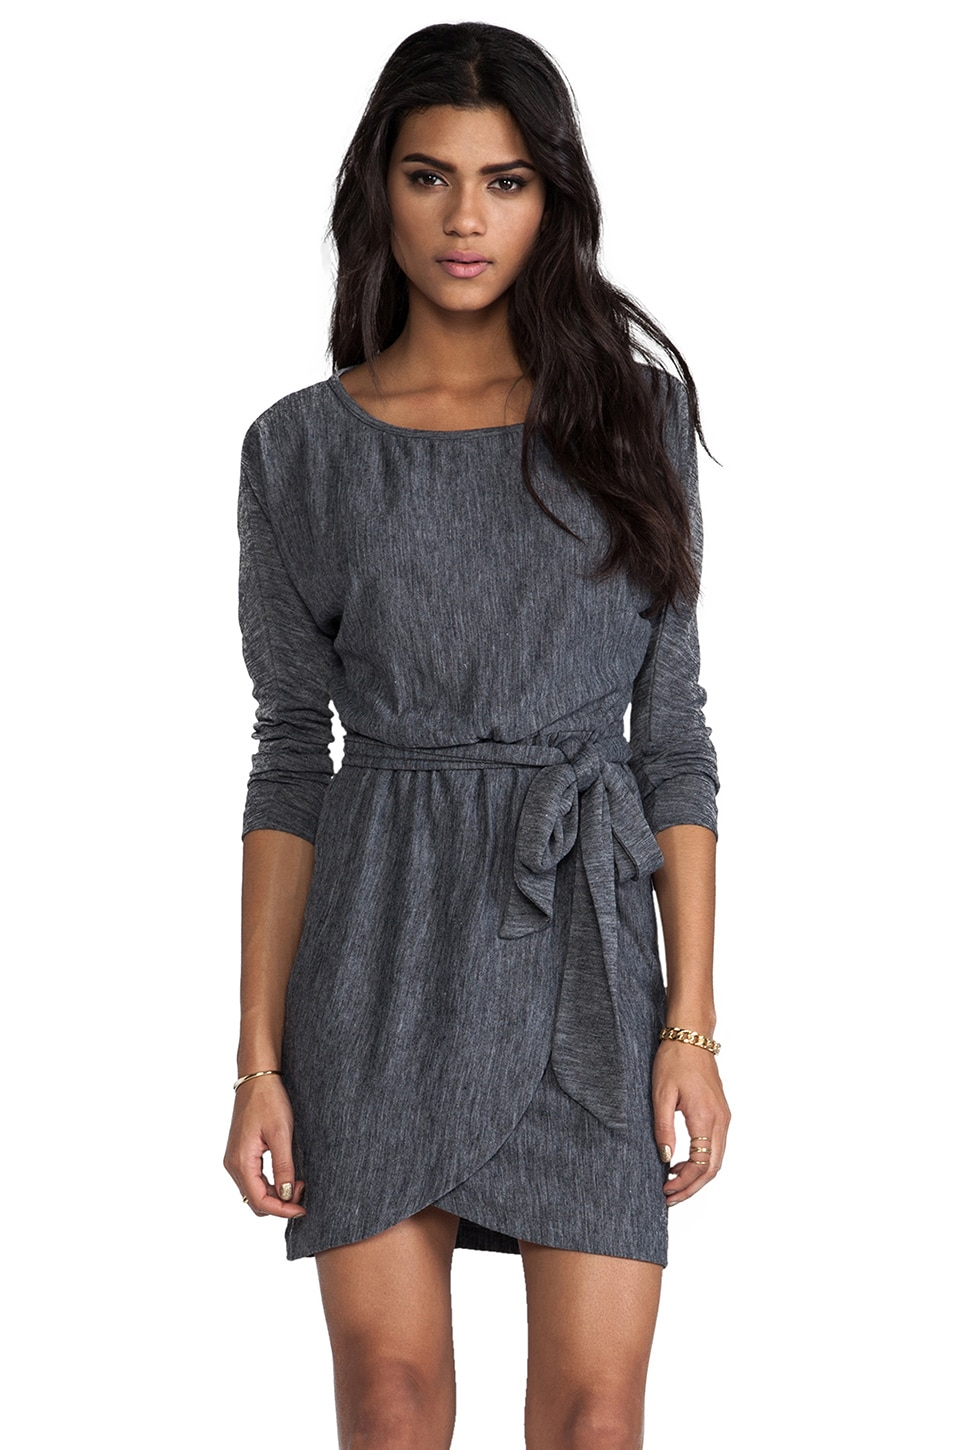 ANINE BING Wrap Dress in Grey